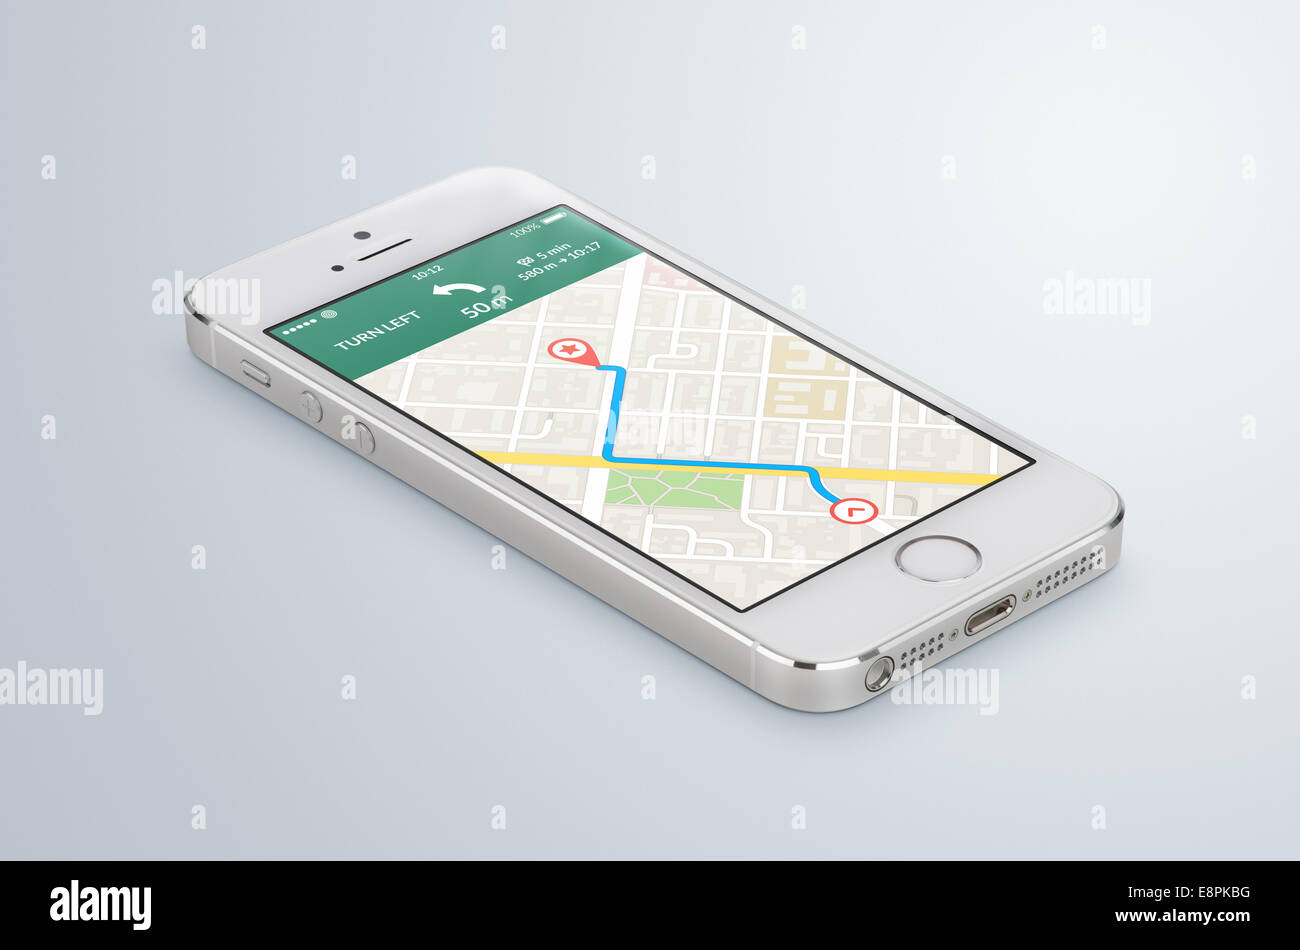 White modern smartphone with map gps navigation application with planned route on the screen lies on the gray surface. - Stock Image